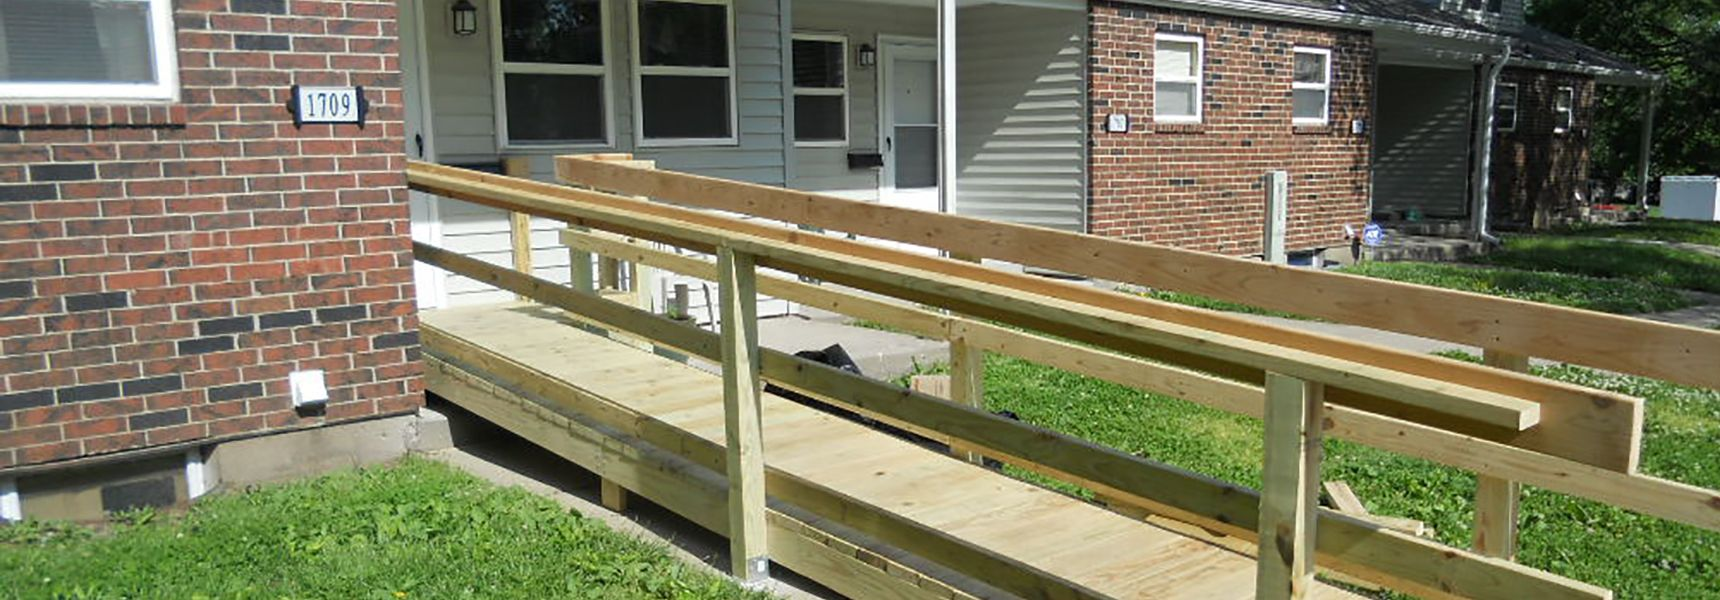 Newly built ramp to front of house